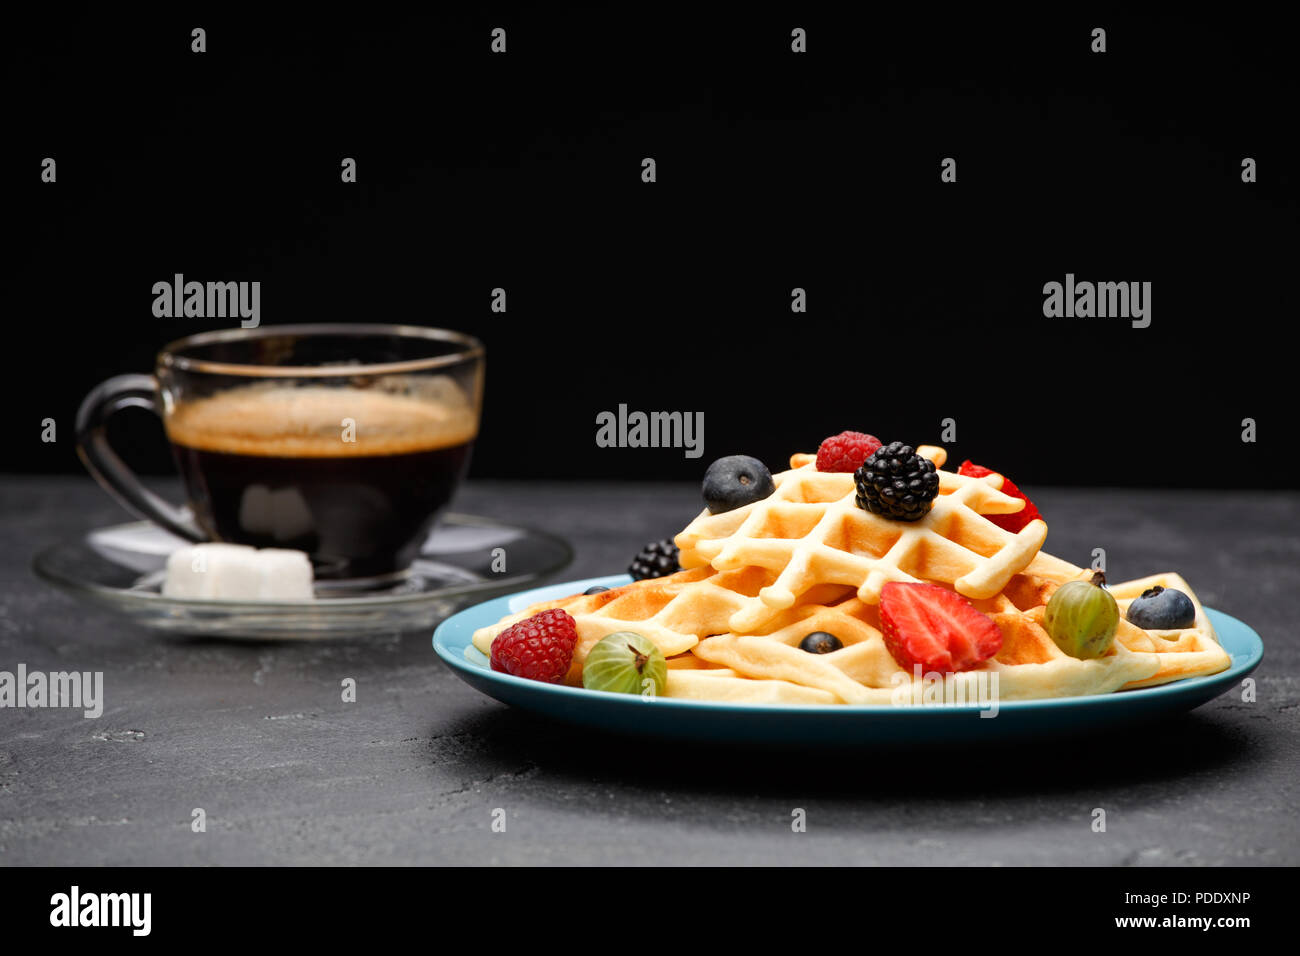 Photo of cup of coffee with sugar with Viennese waffles with strawberries, raspberries - Stock Image